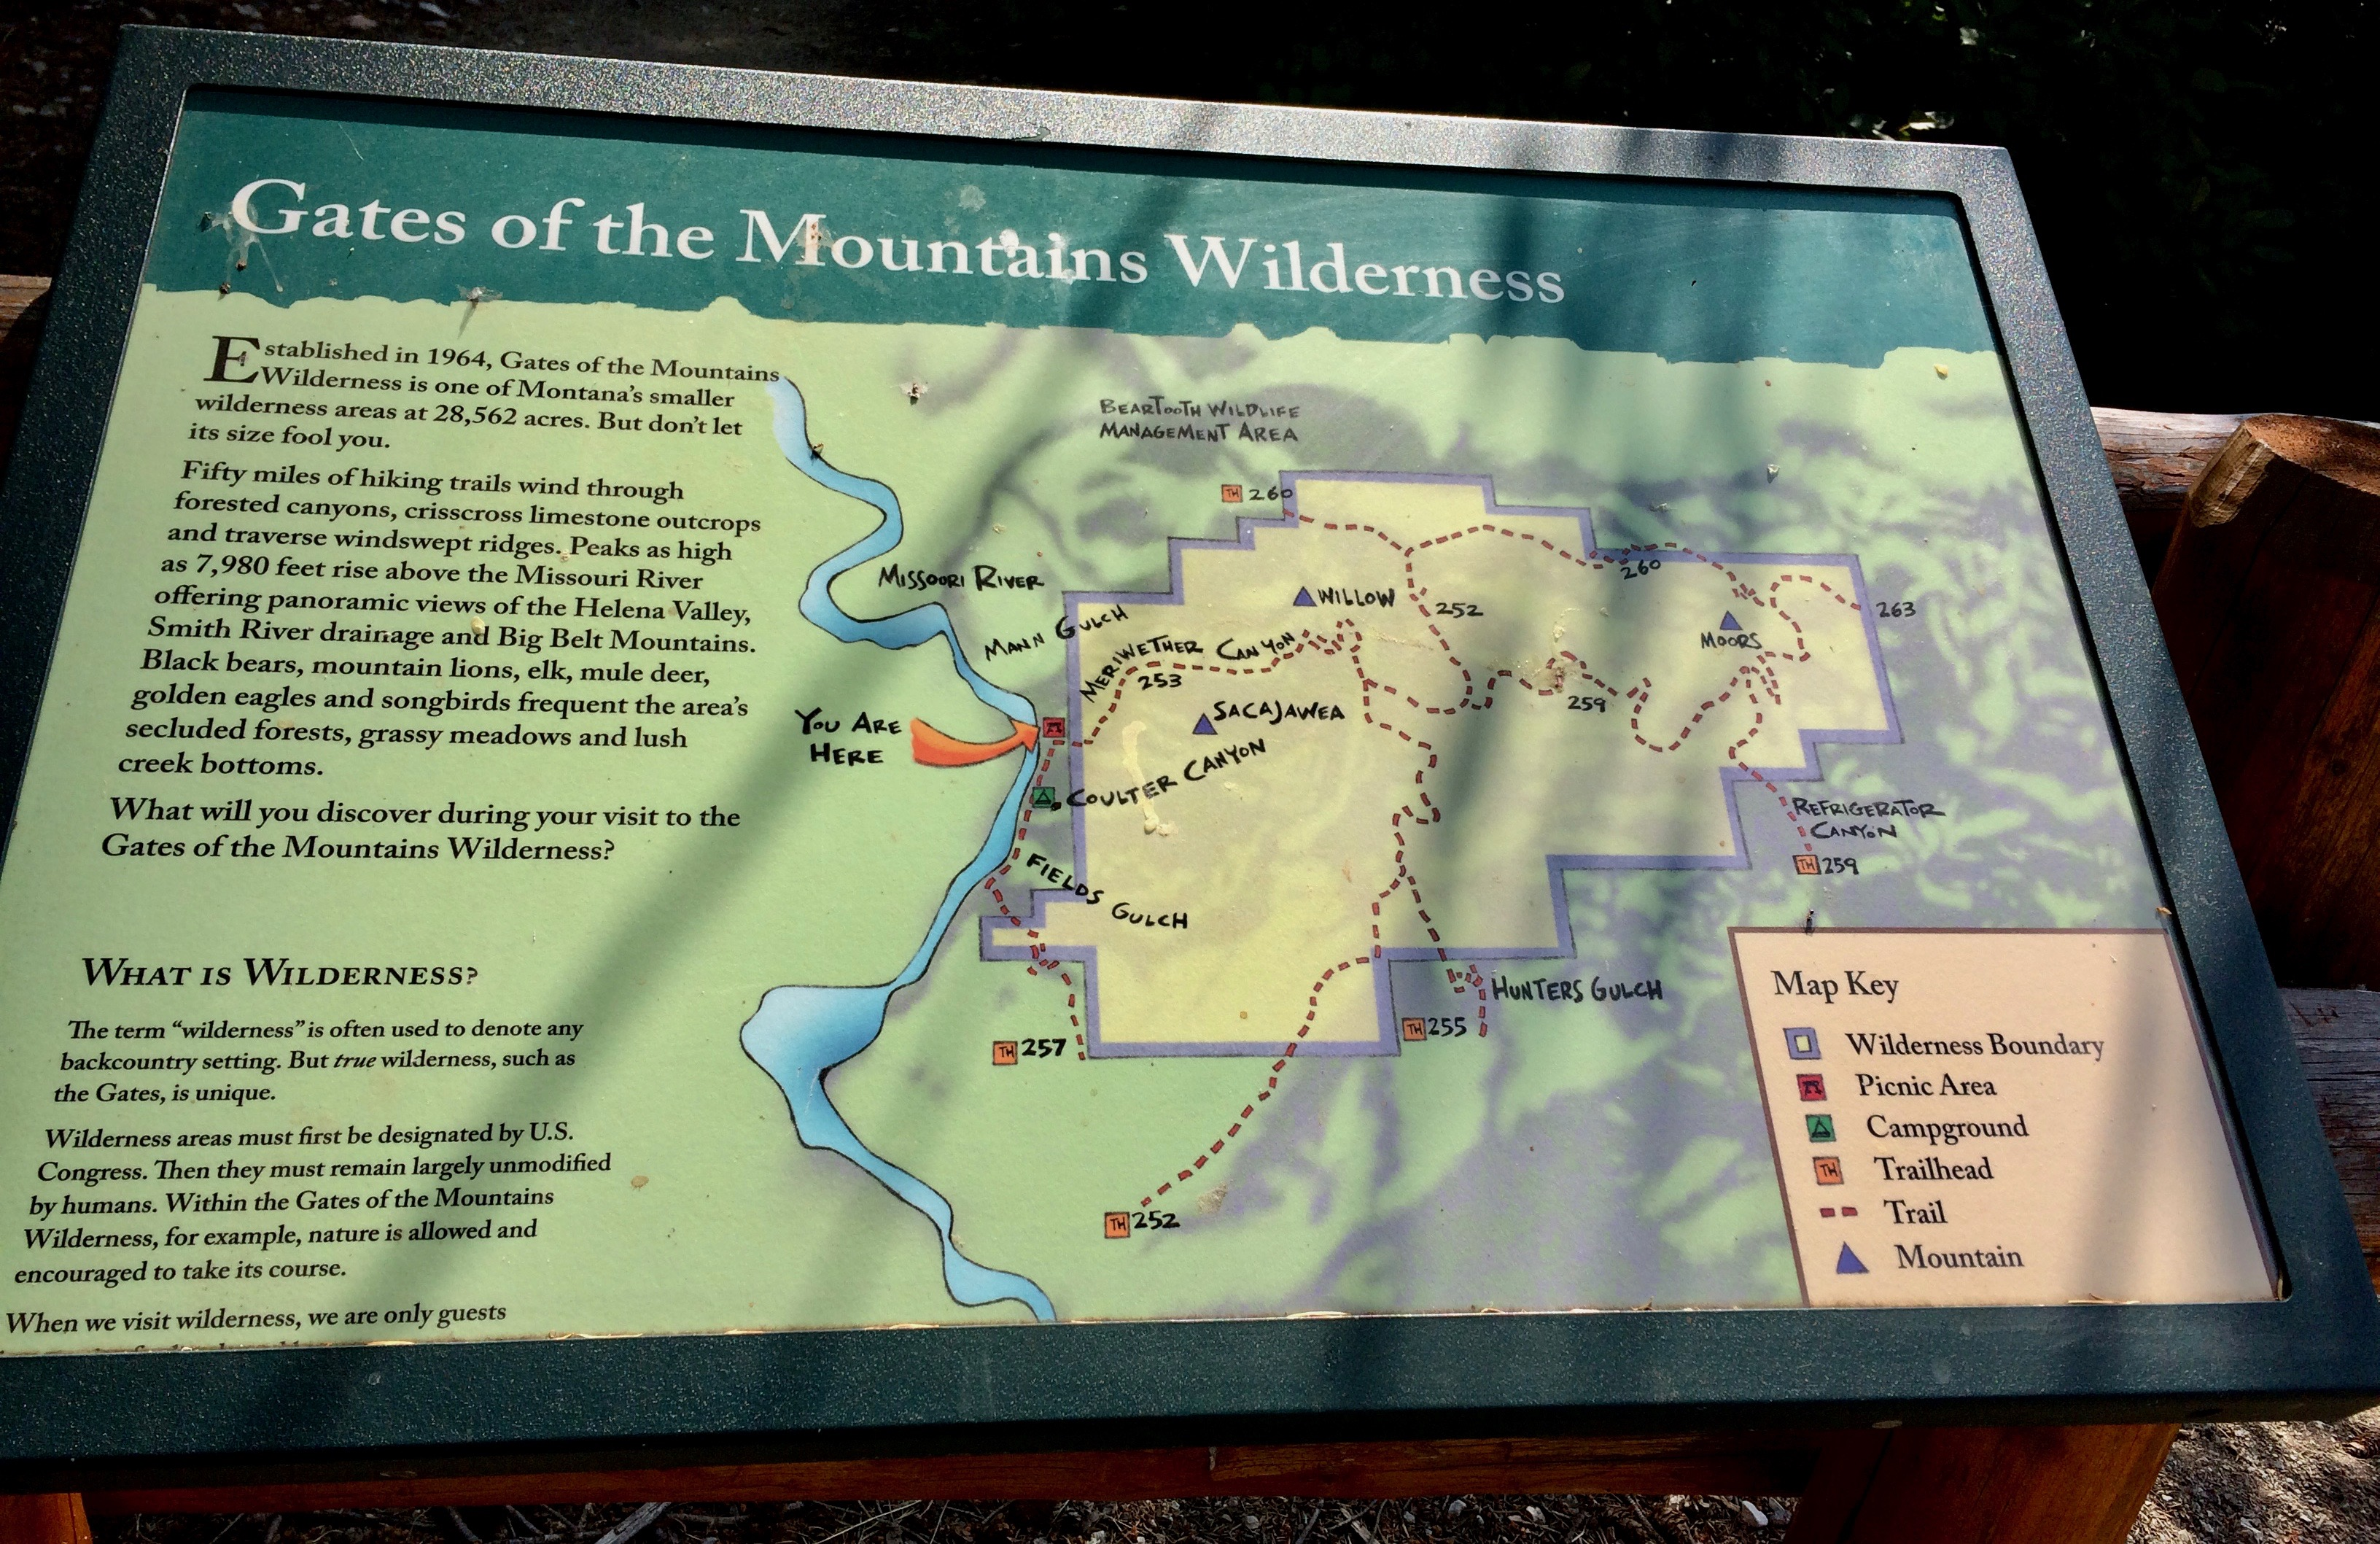 Gates of the Mountains Wilderness area